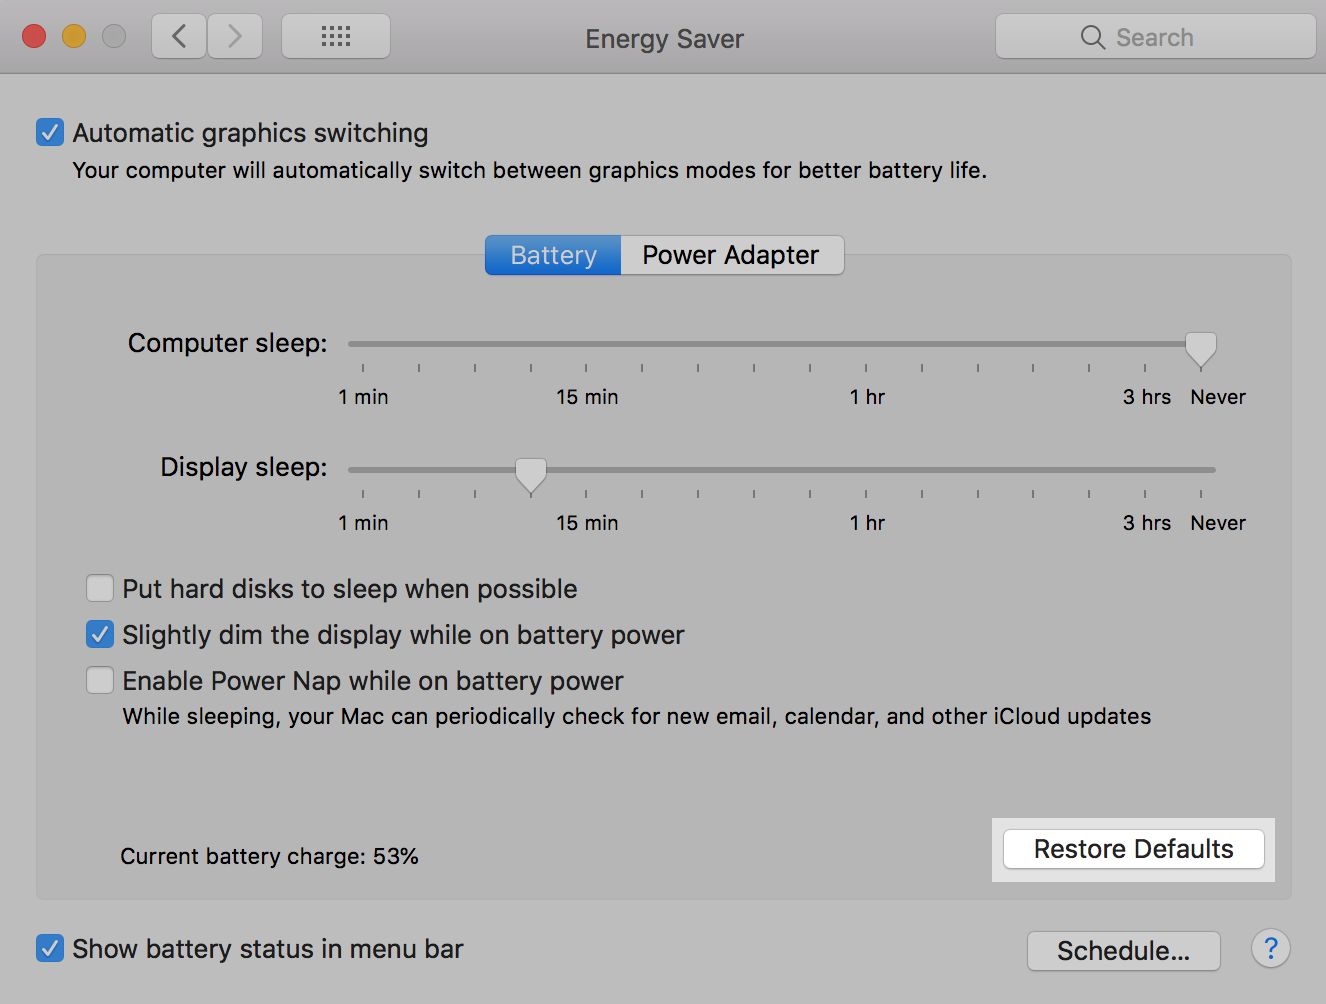 macOS Energy Saver: Restore Defaults